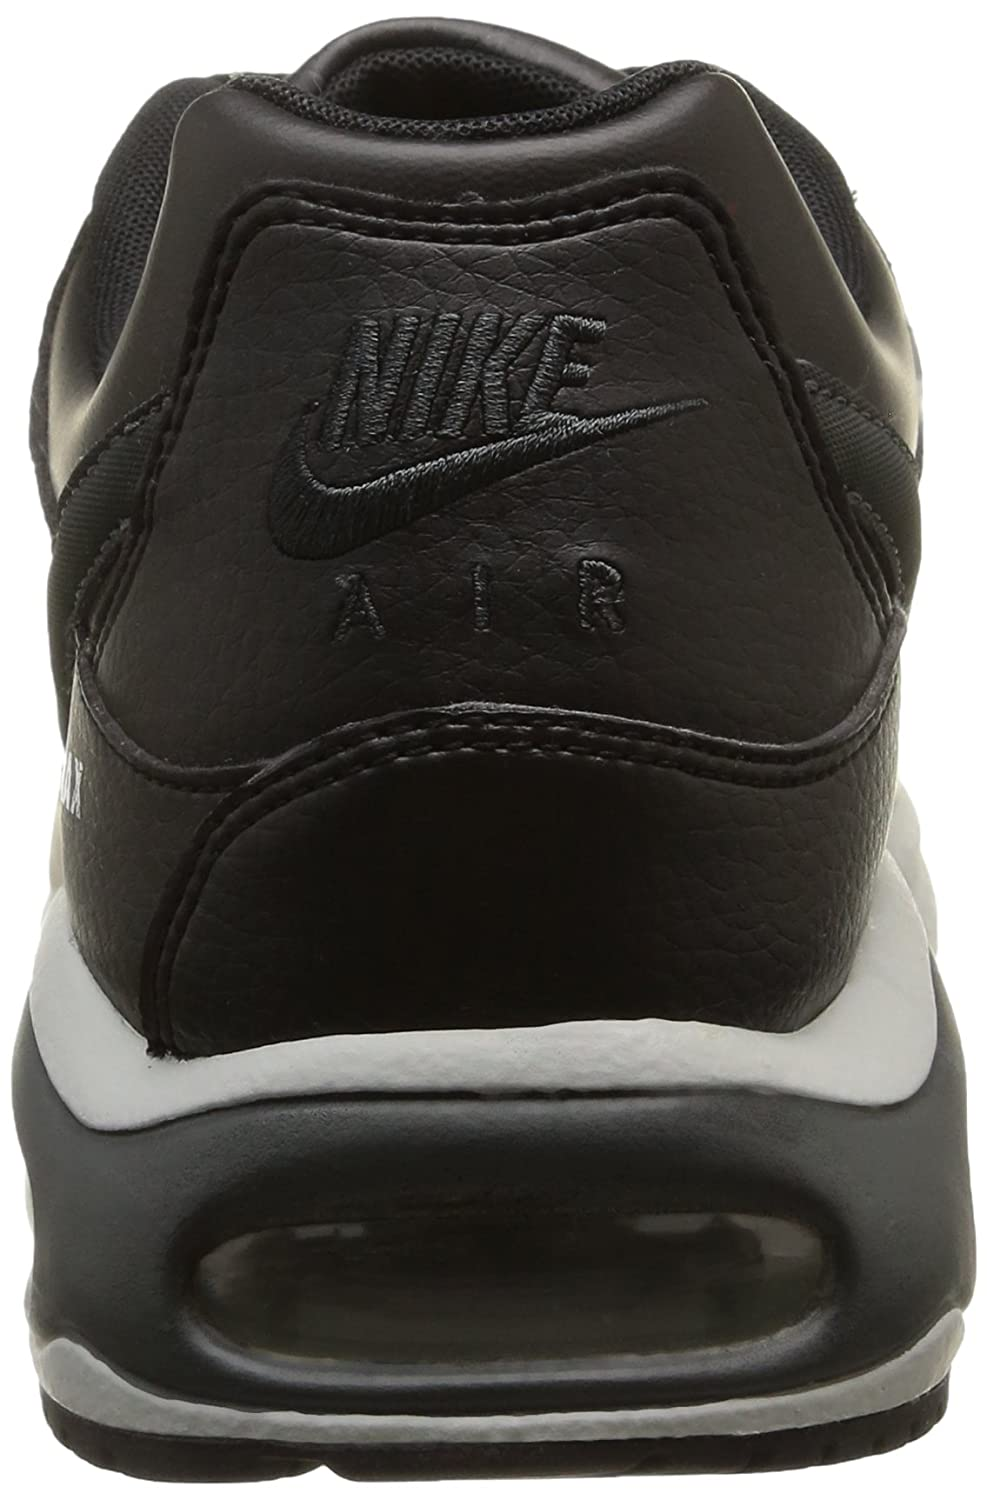 Nike Air Max Command Leather blackneutral greyanthracite